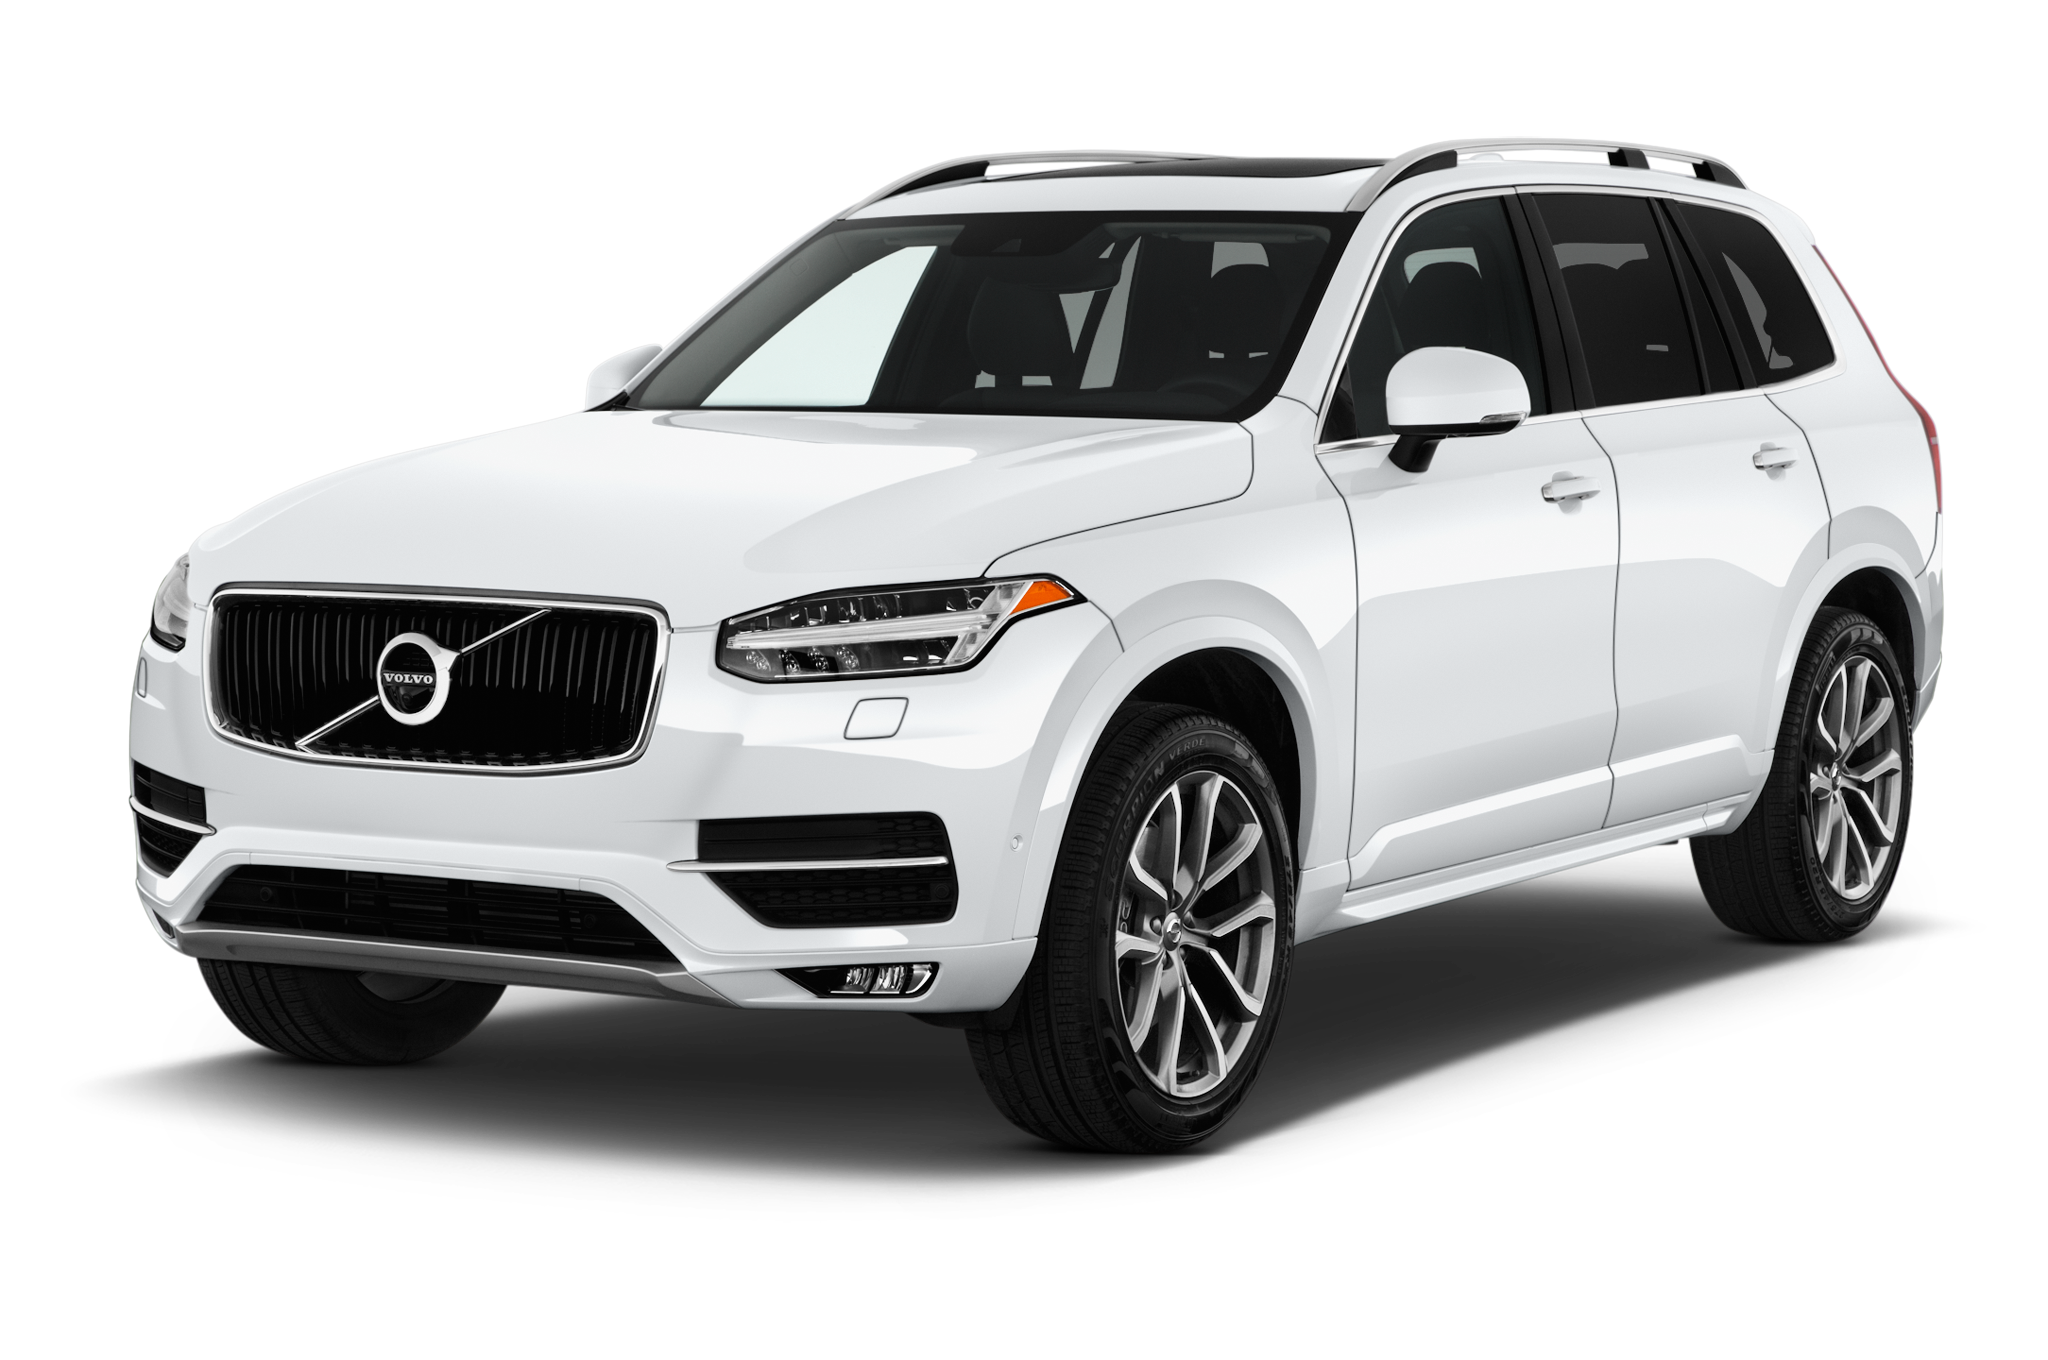 Volvo XC90 - MSN Autos